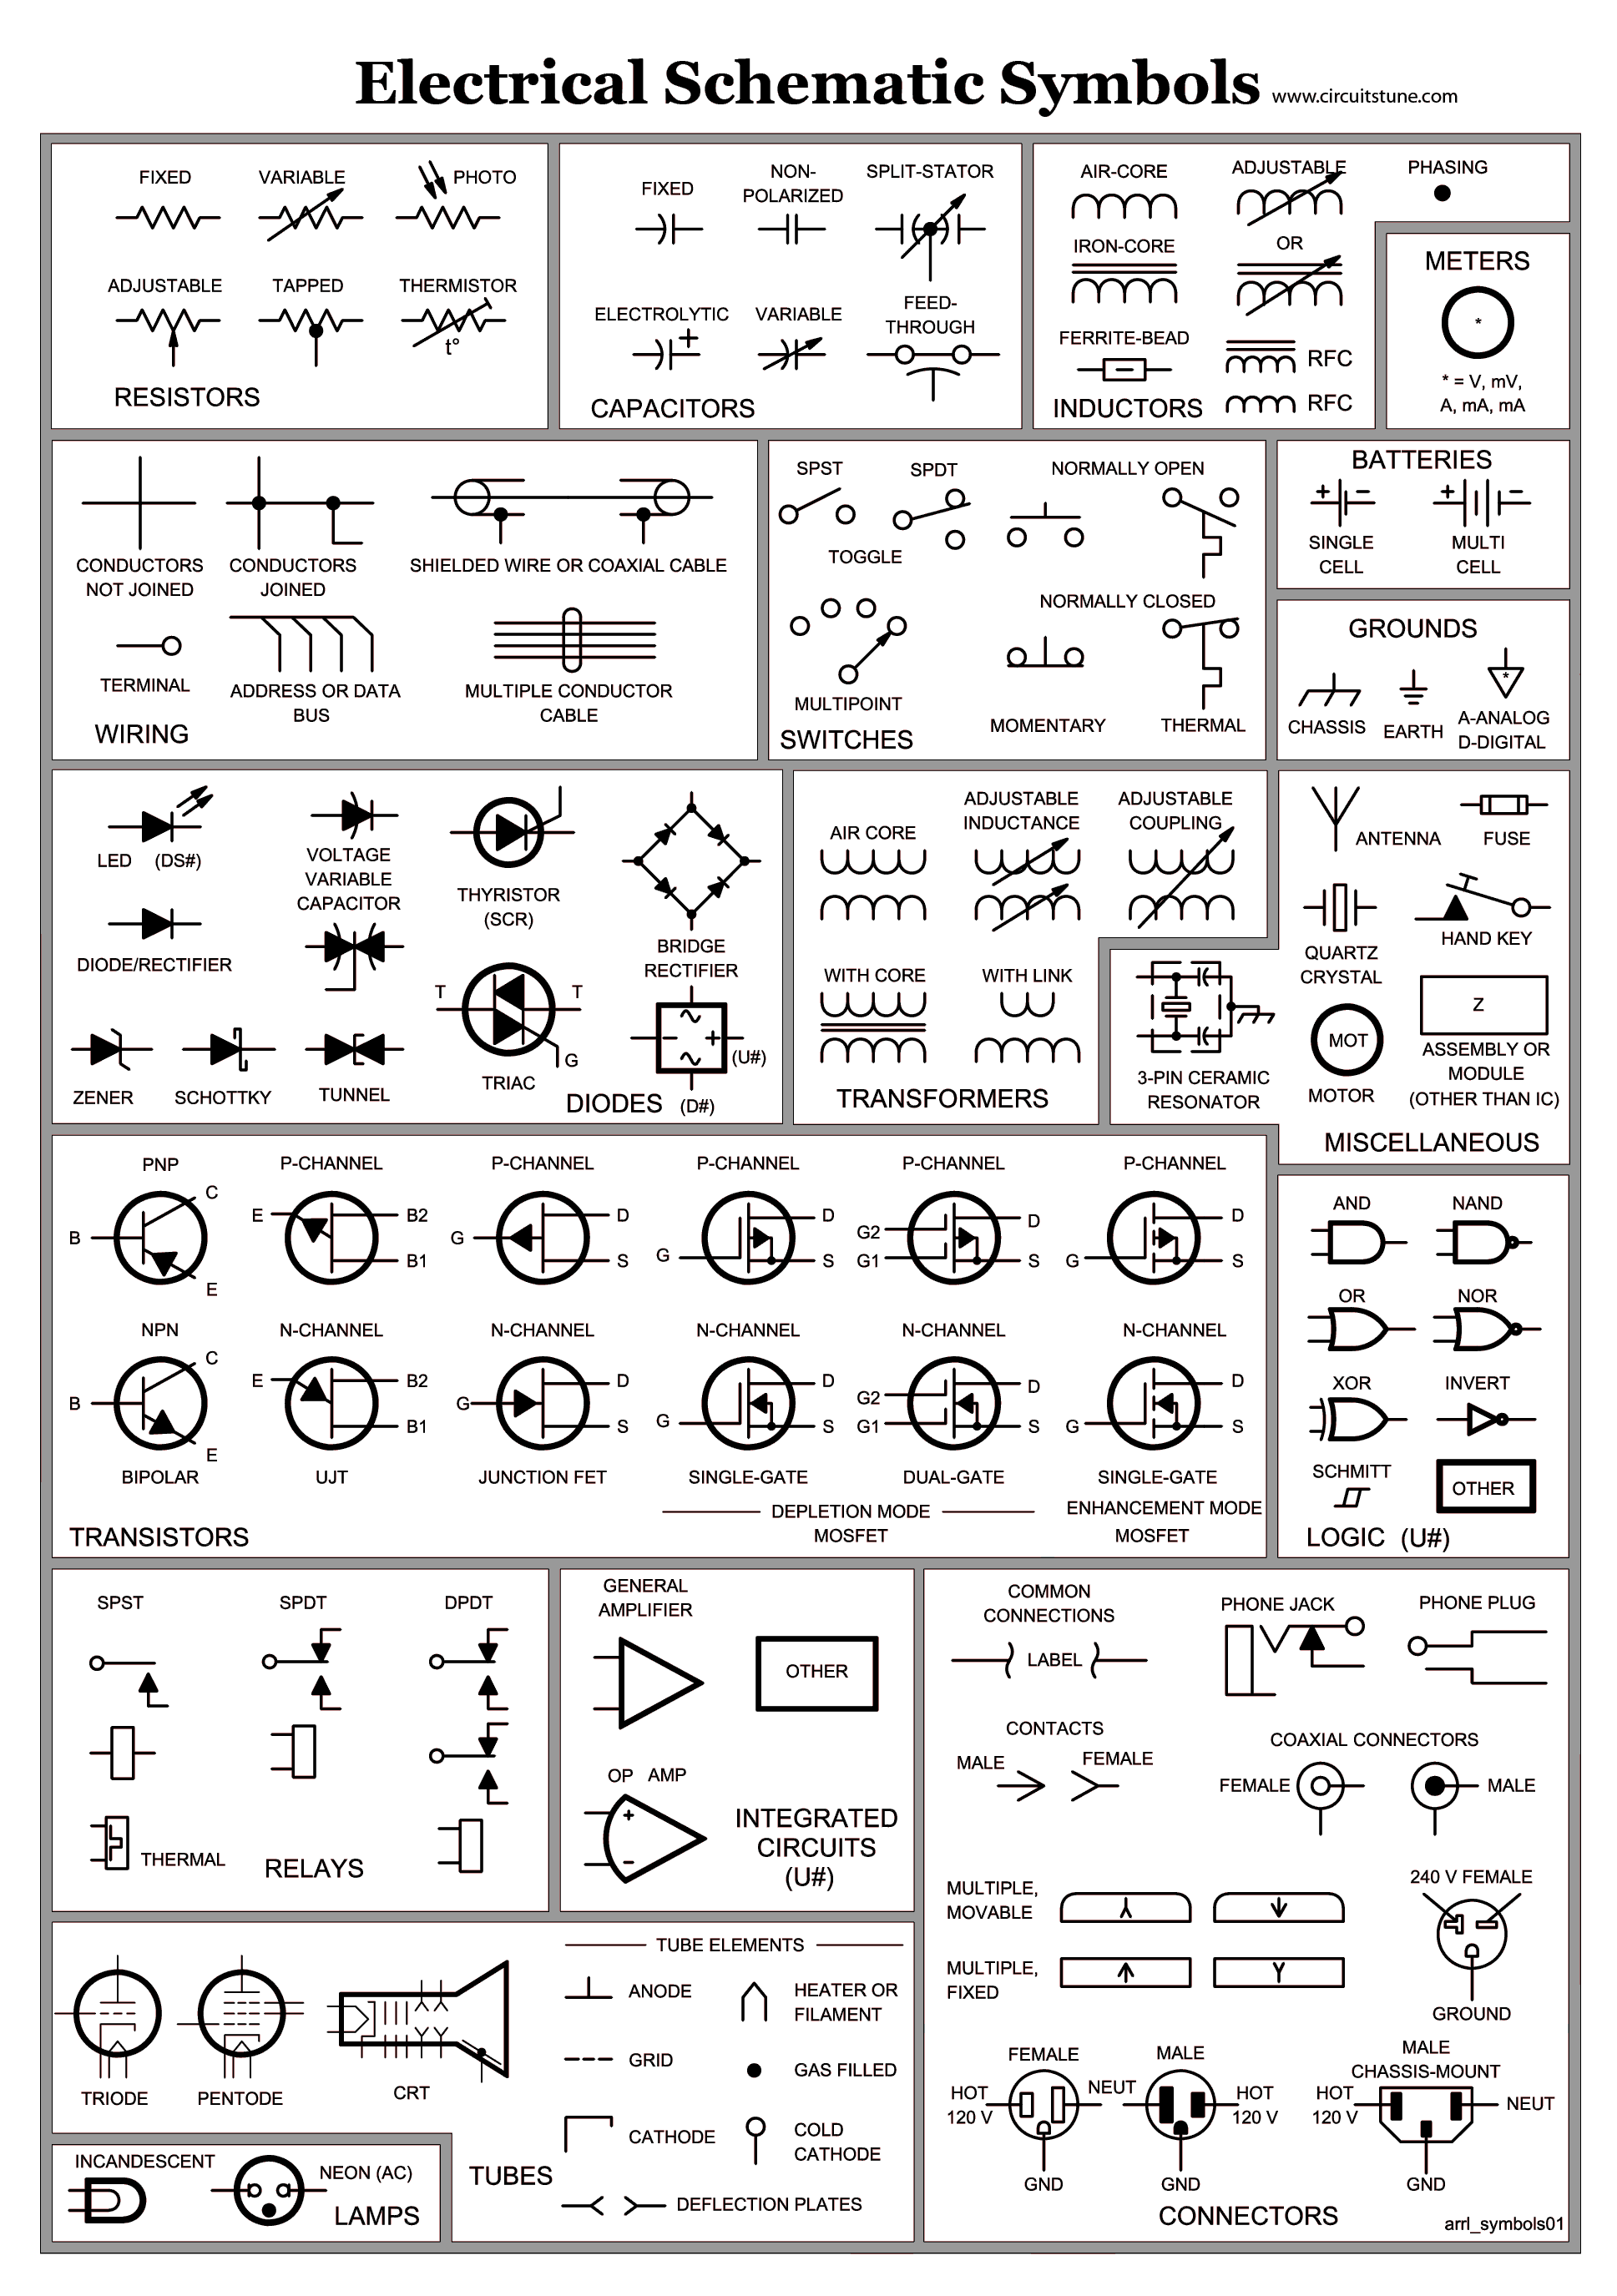 Auto Wiring Diagram Symbols Chart | Manual e-Book on basic car diagram, basic family tree diagram, basic engine diagram, basic auto parts, basic cell diagram, basic auto connector, basic computer network diagram, basic electrical schematic diagrams, basic electronic circuit diagram, basic auto warranty, basic light wiring diagrams,